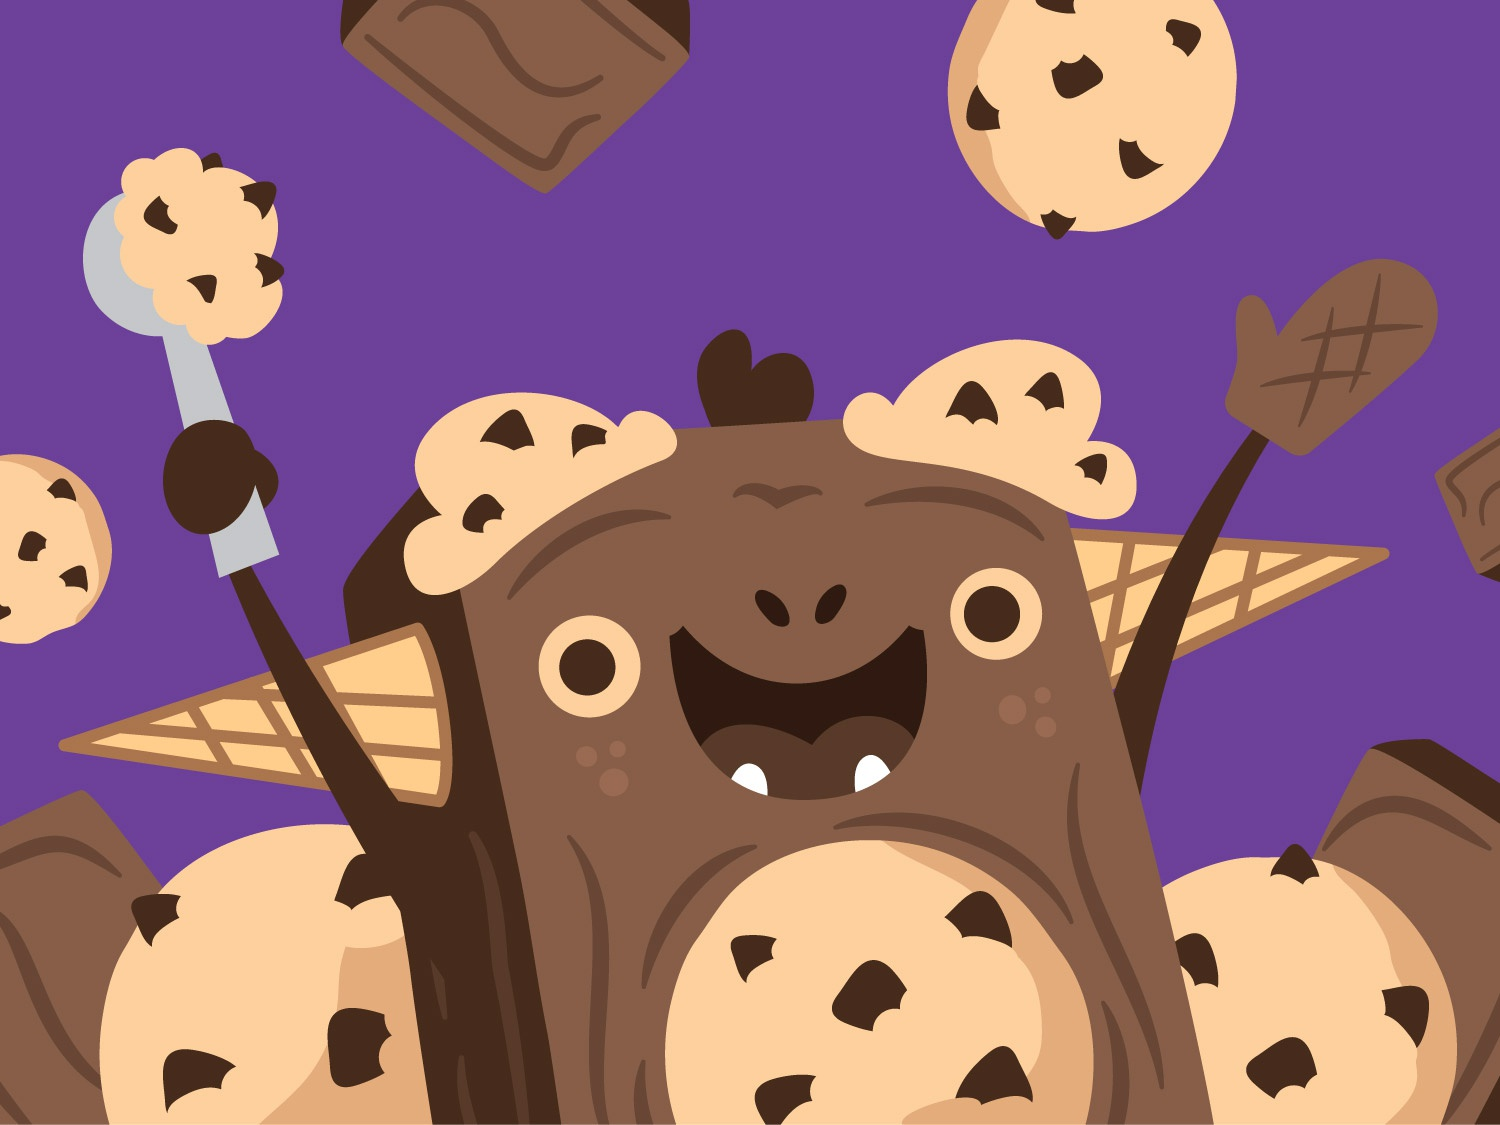 Brookie Monster brookie design food cookie brownie ice cream cone ice cream faces illustration vector character